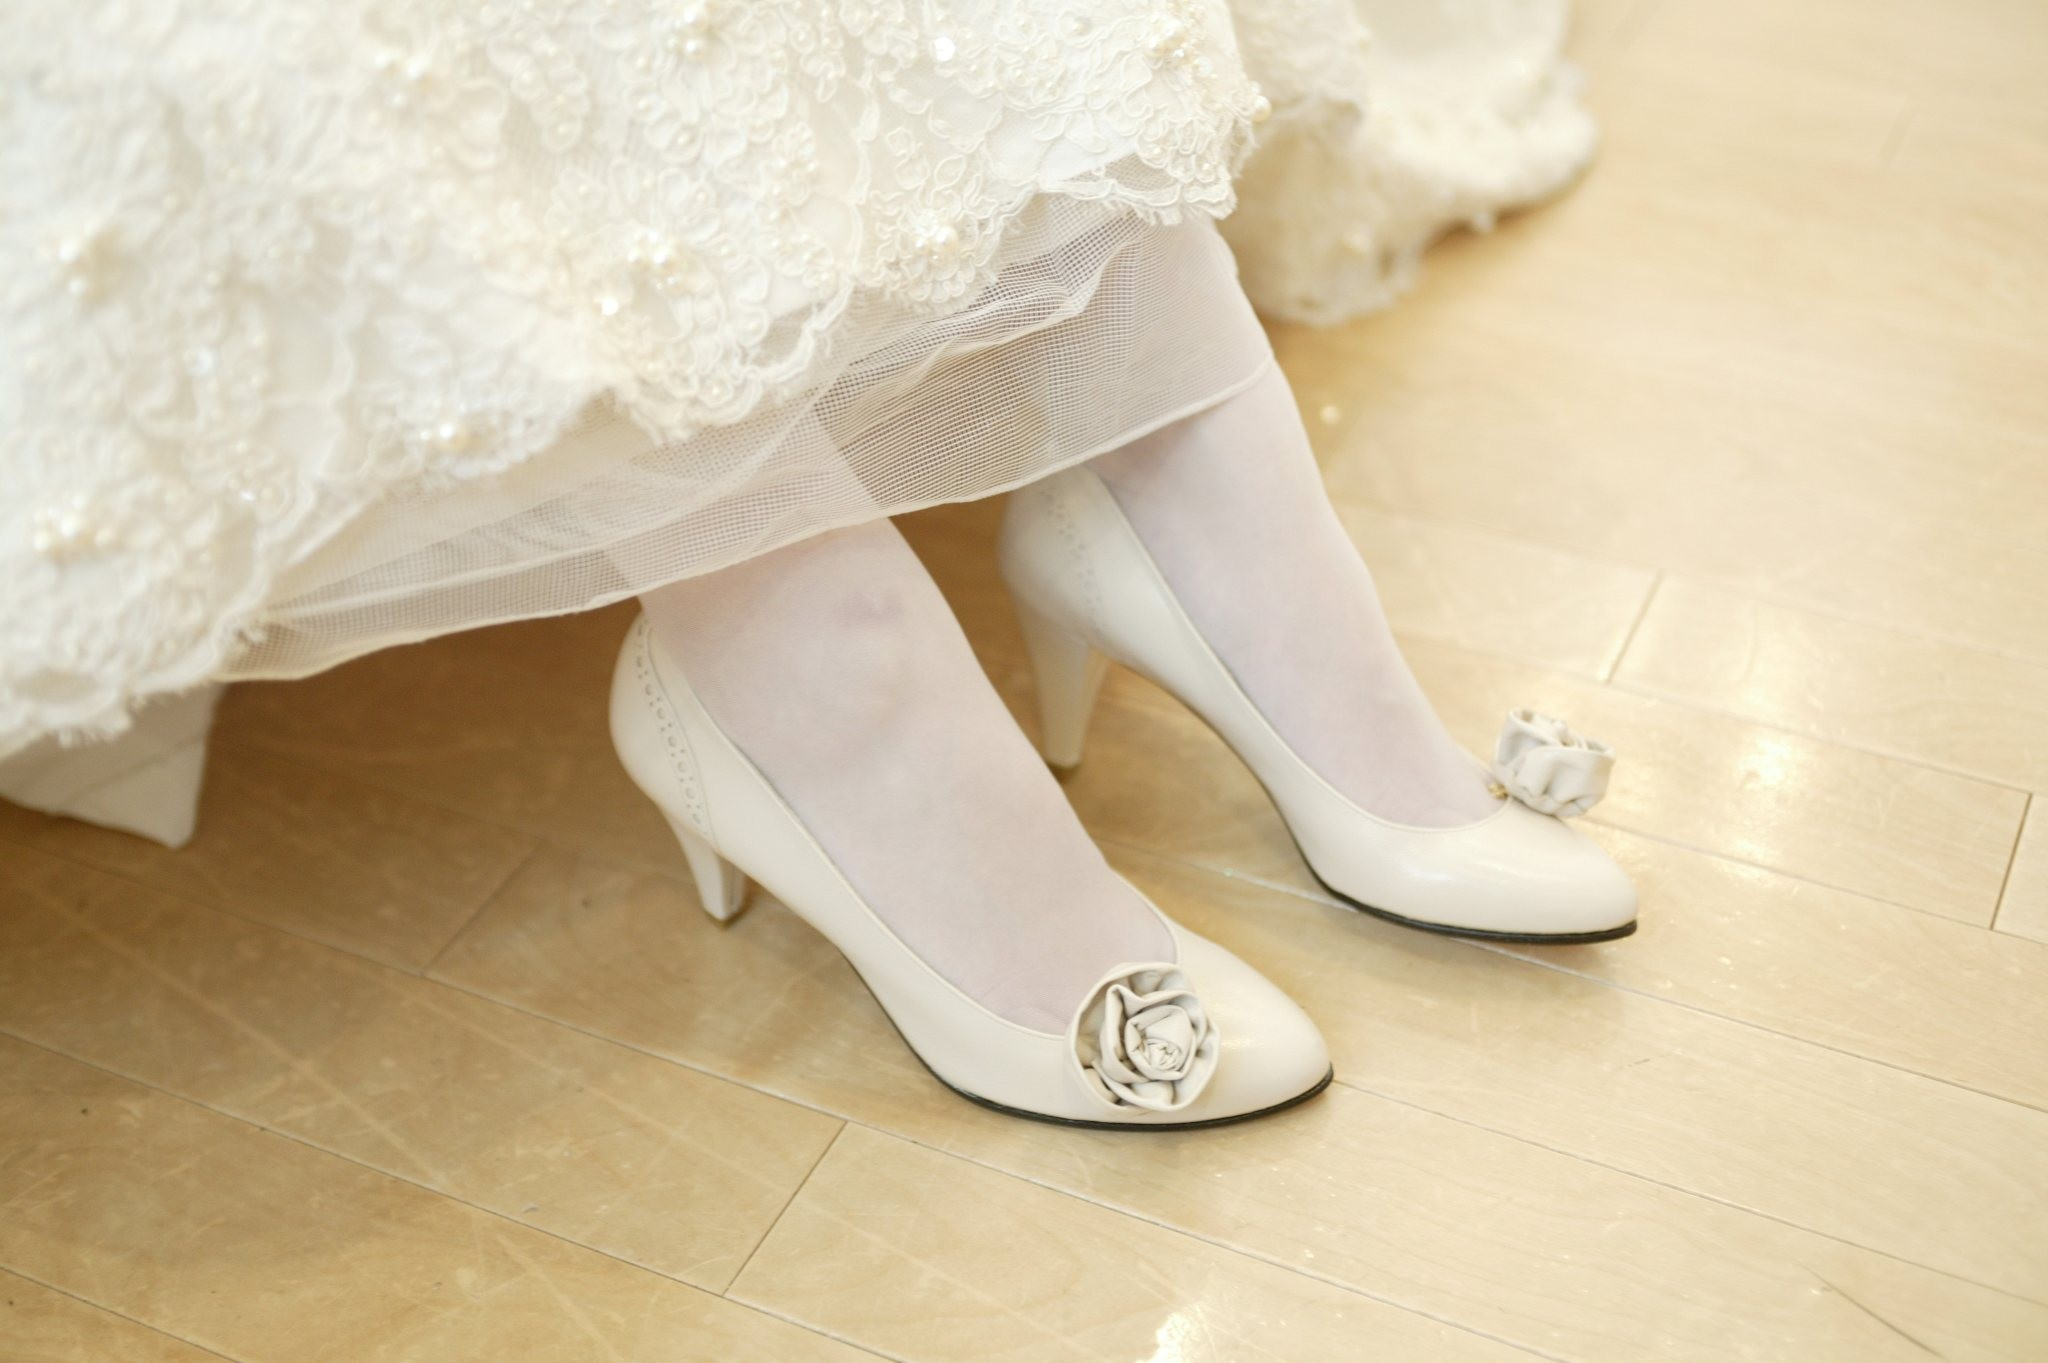 wearing rose pumps for wedding